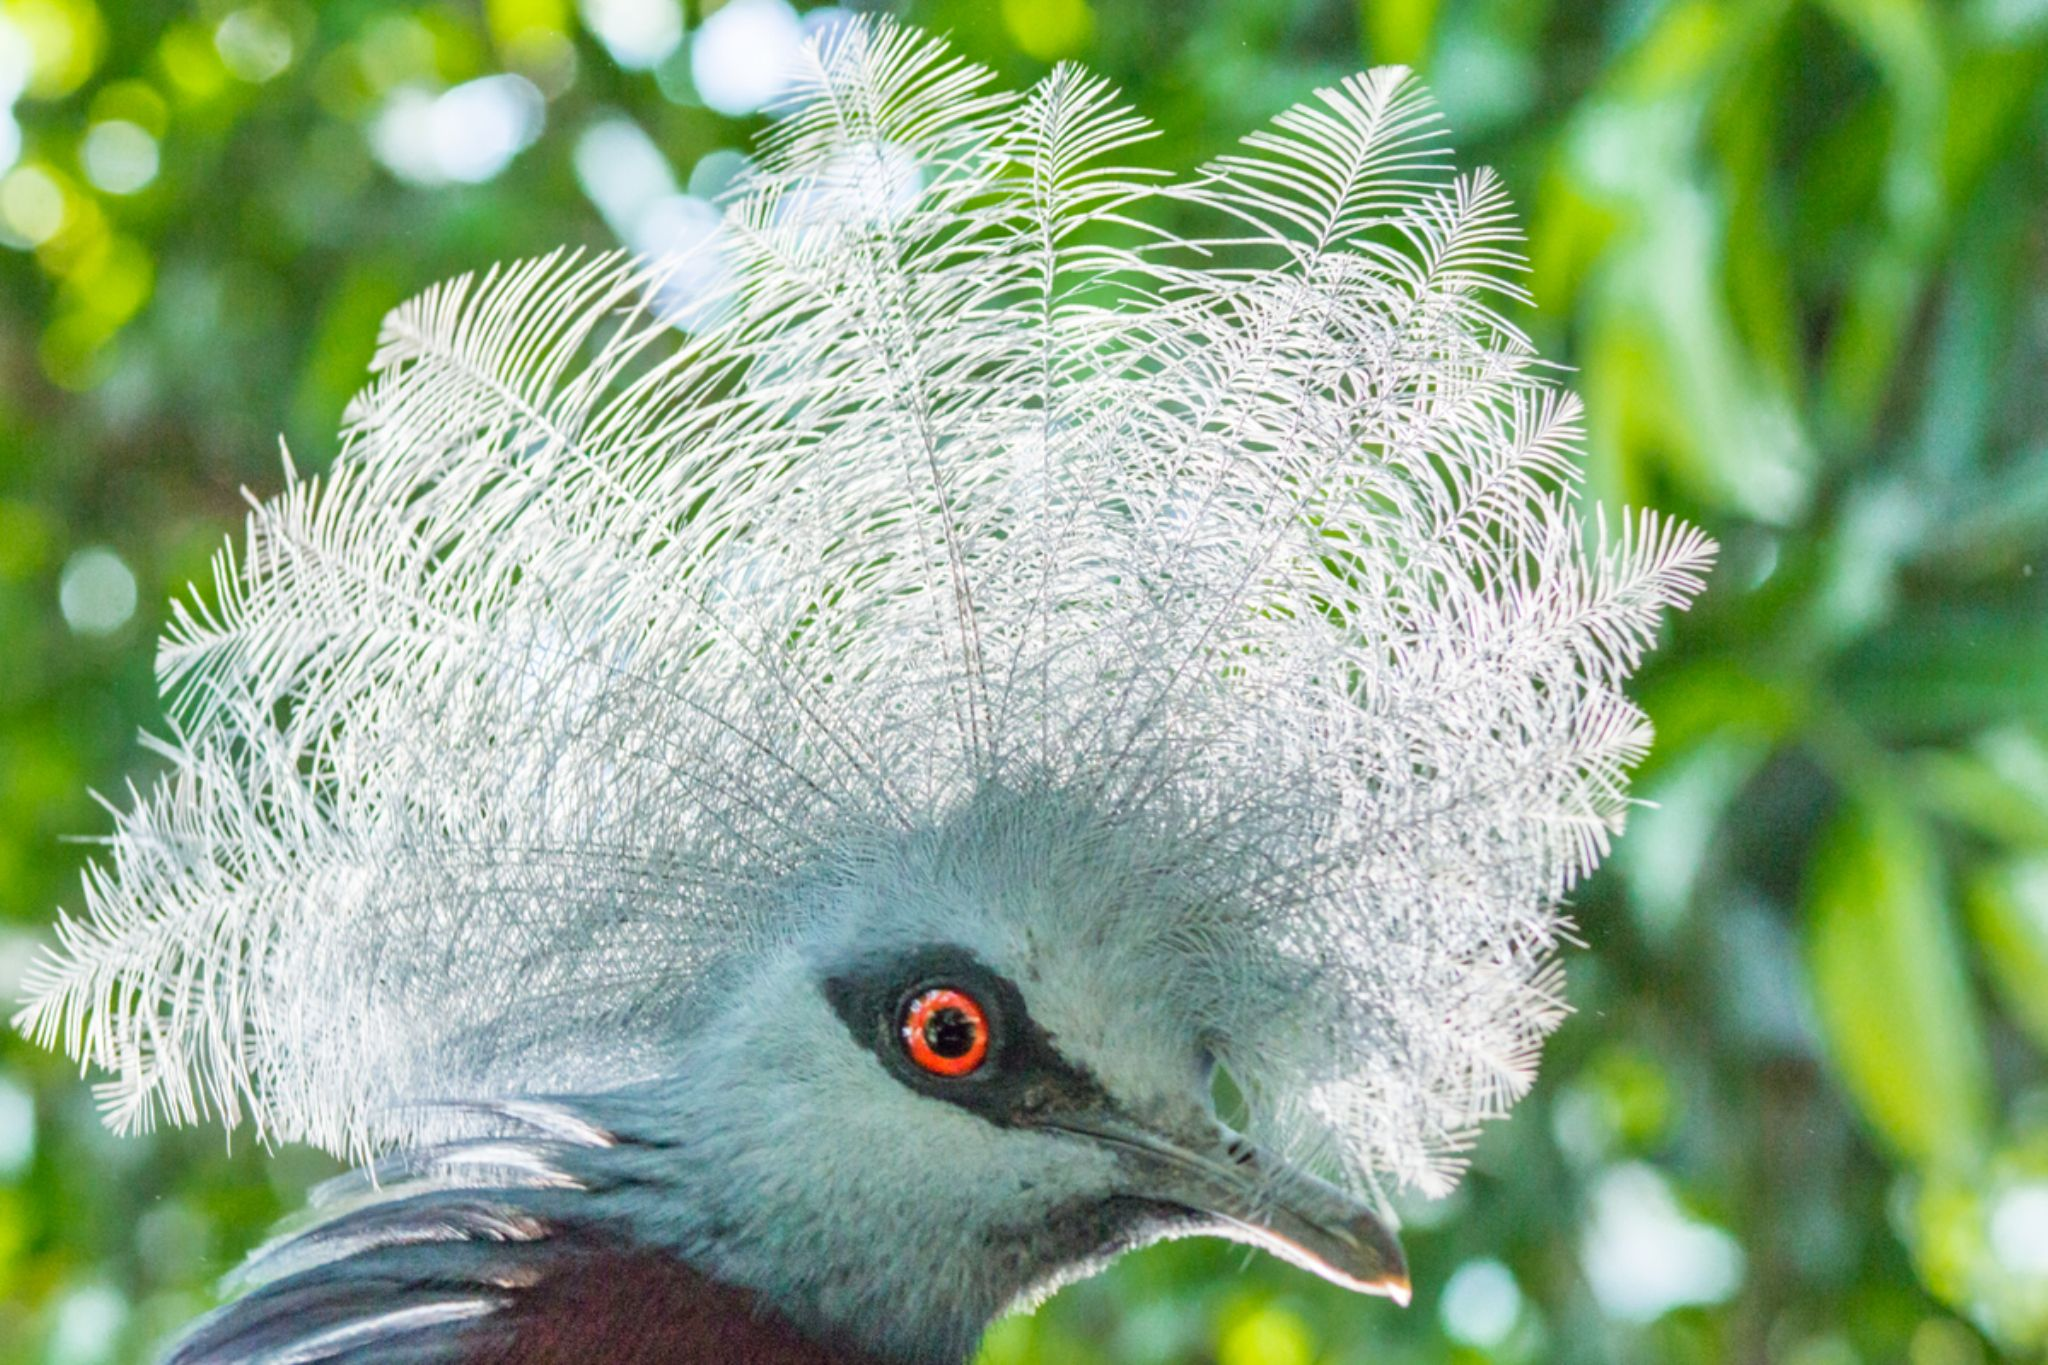 Southern Crowned Pigeon by Ohlee